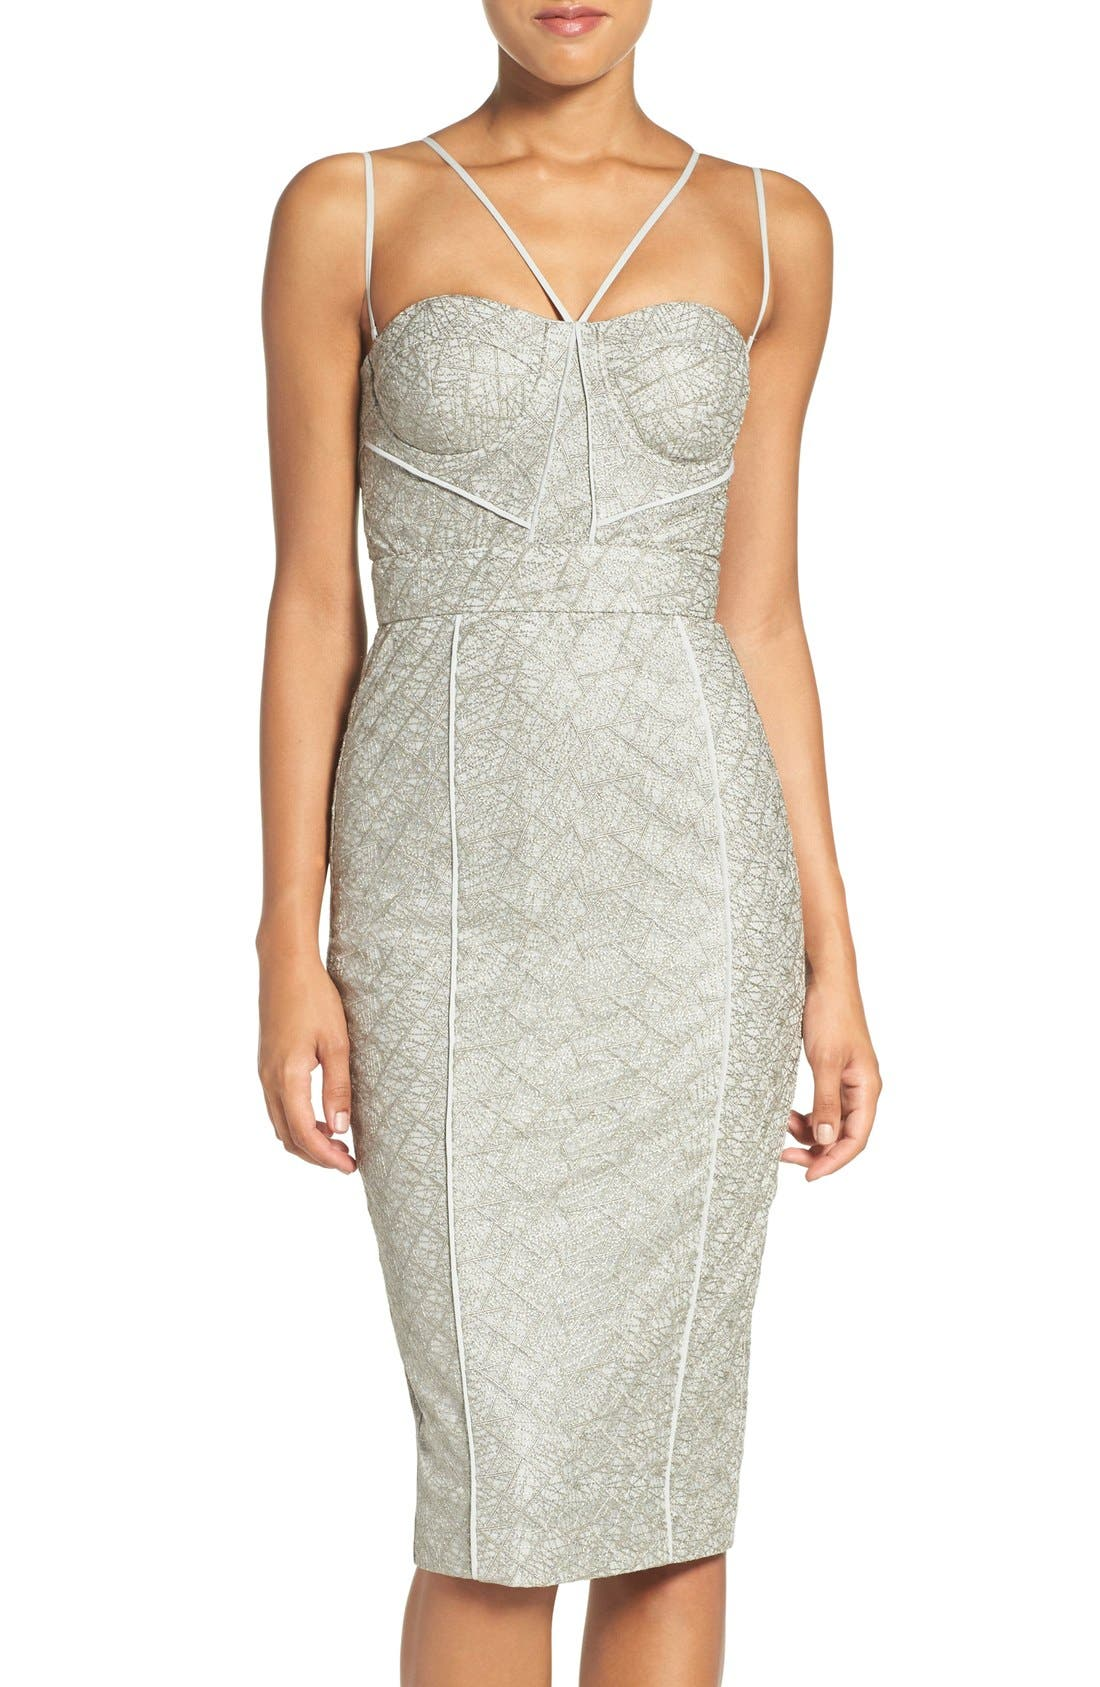 'Milly' Embroidered Mesh Midi Dress,                             Main thumbnail 1, color,                             230